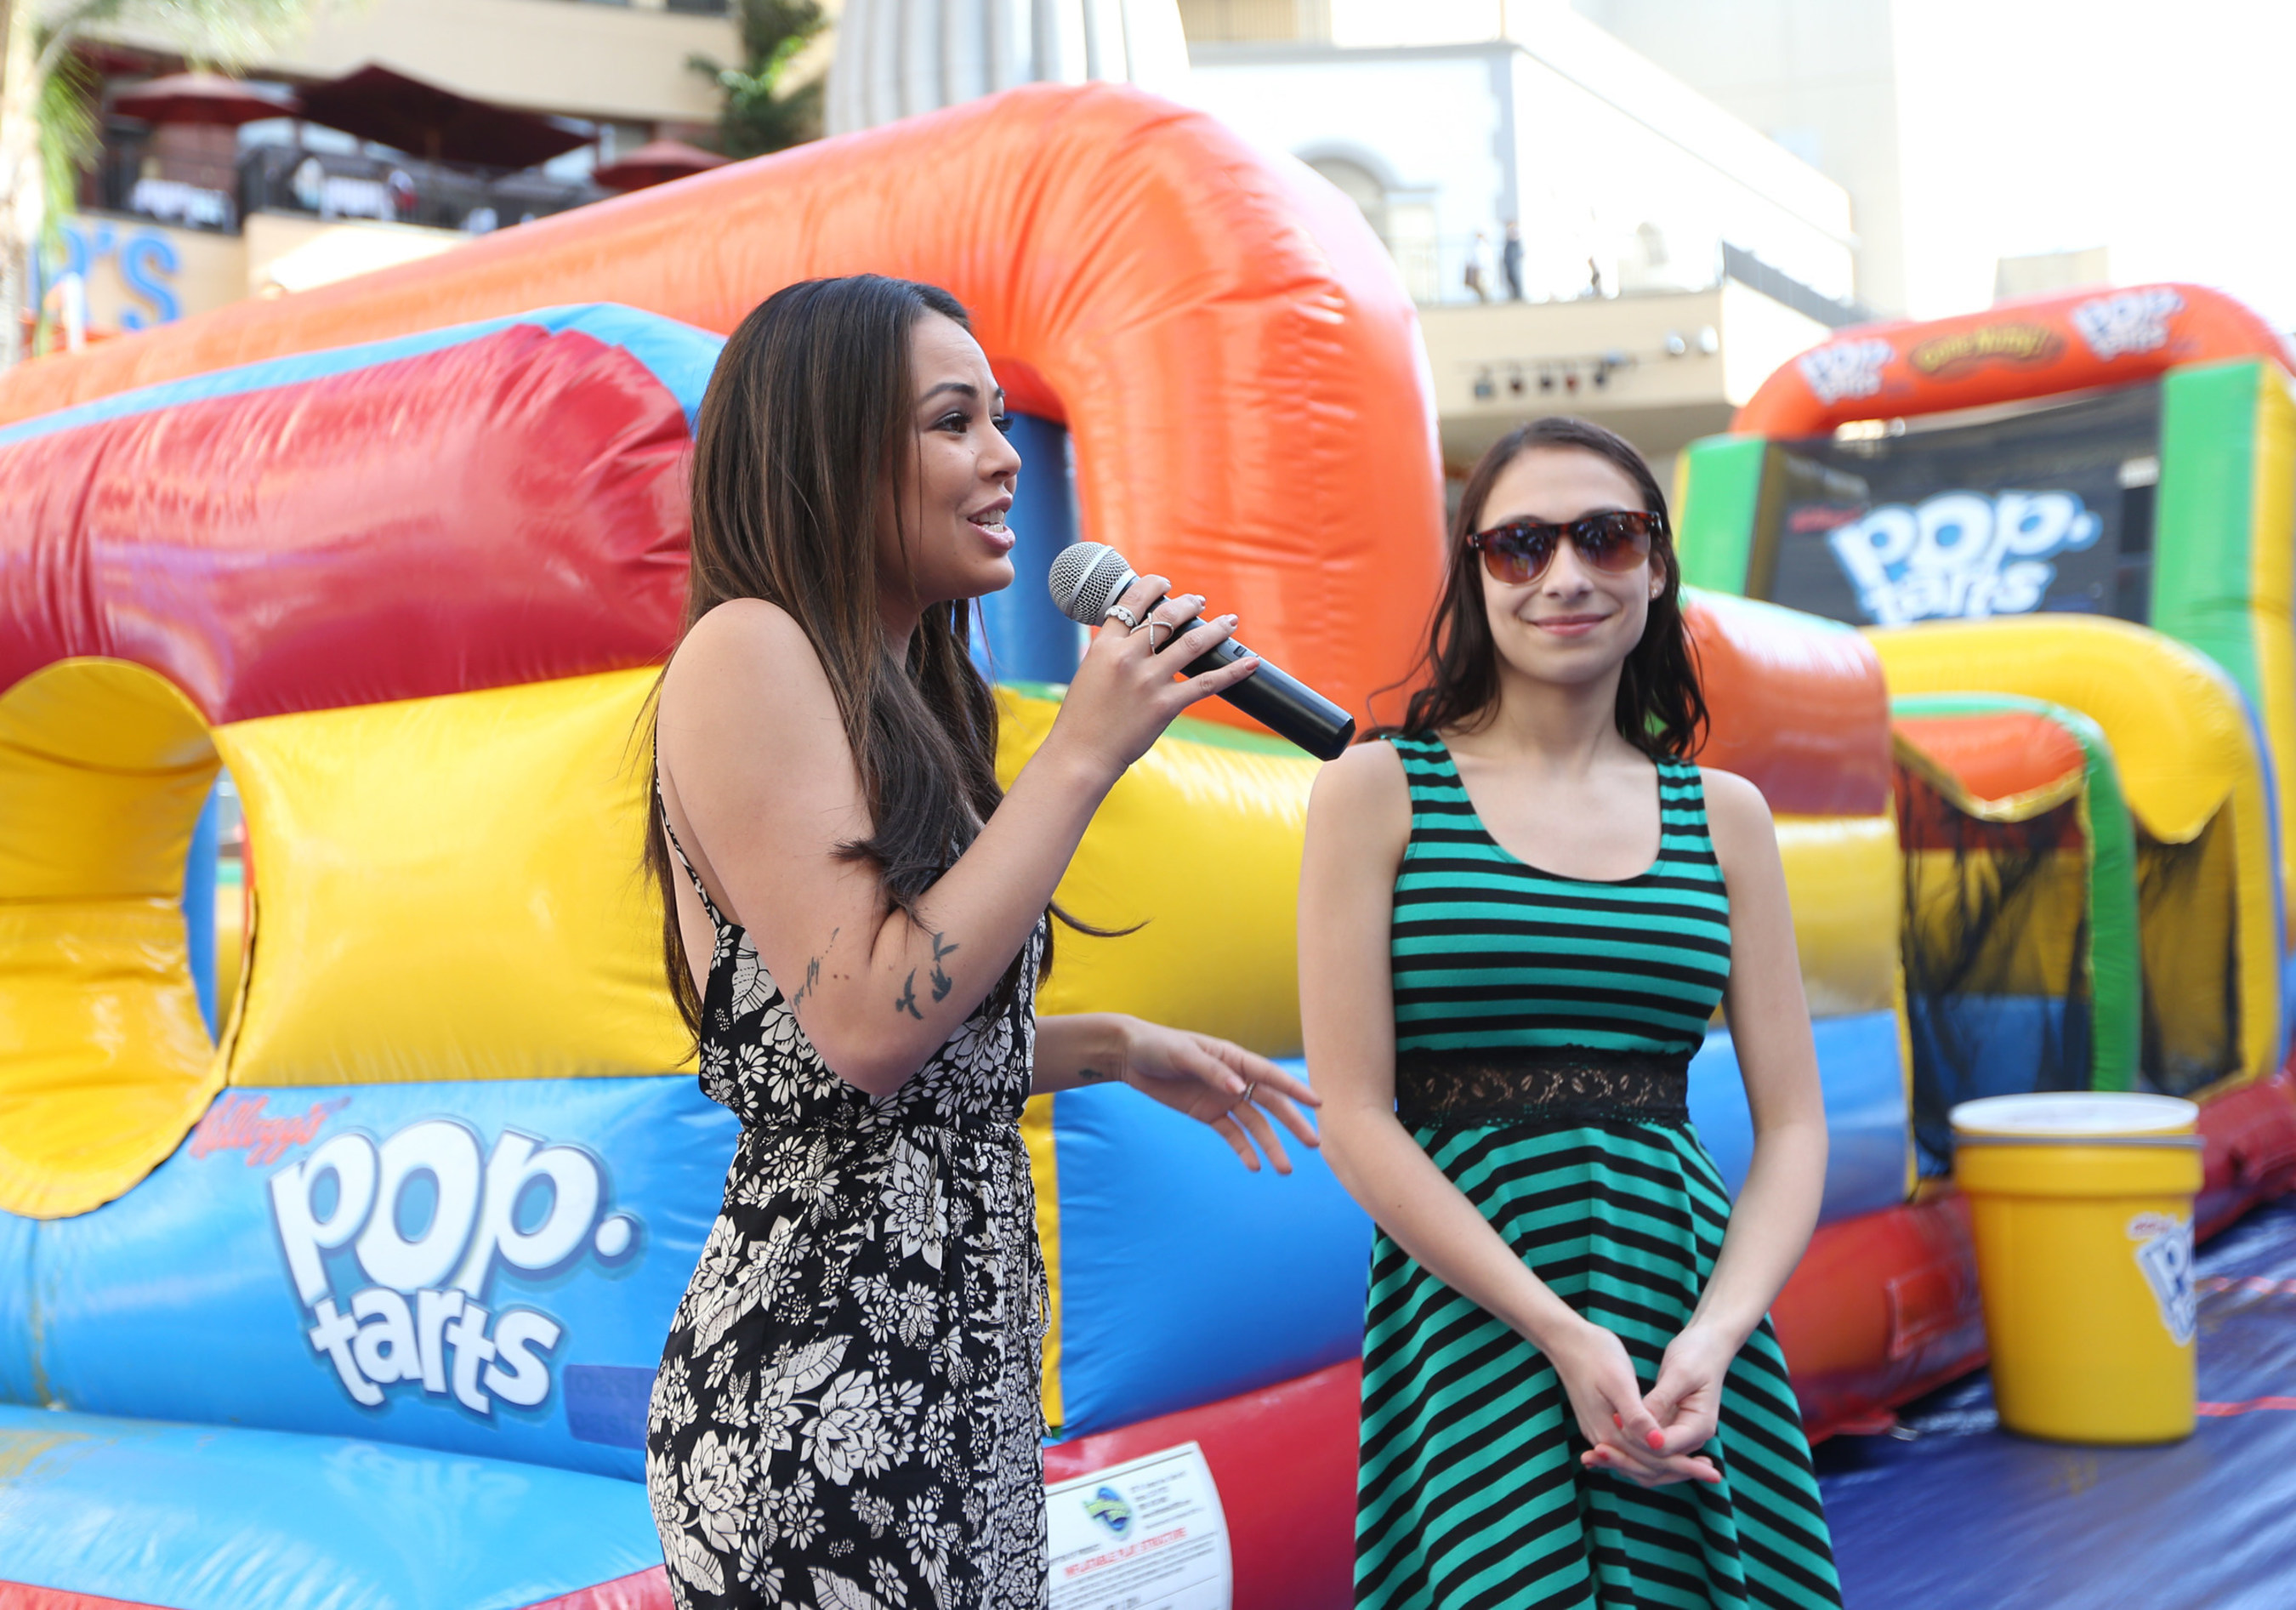 Pretty Little Liars actress Janel Parrish and 16-year old Gabrielle Johnson at the Pop-Tarts(R) PB&J Day celebration